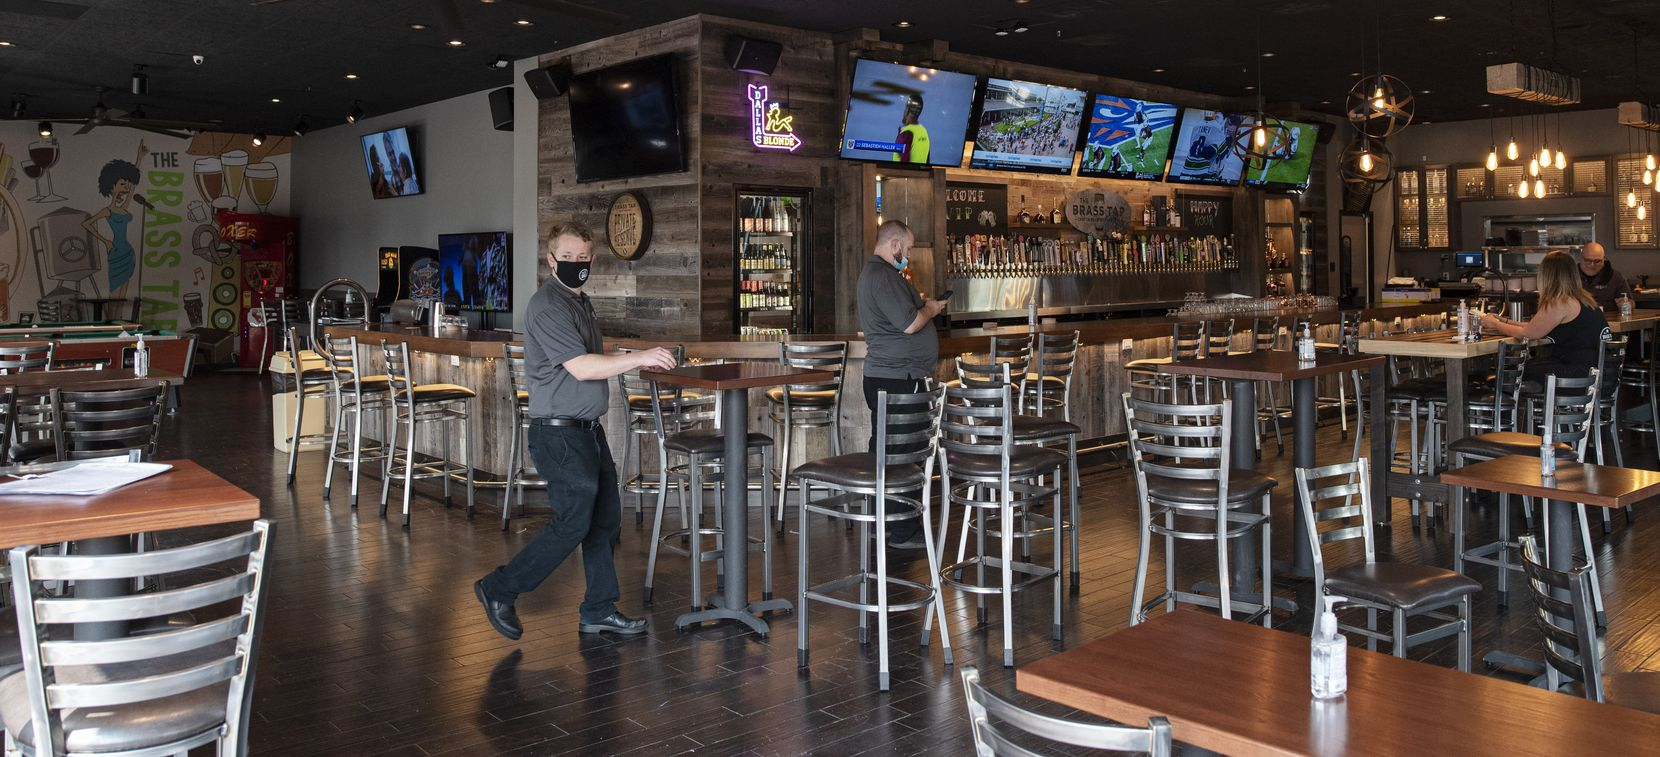 Co-owner Ridham Bhatt and his restaurant bar The Brass Tap in Rockwall, on Saturday, Sept. 19, 2020. The Brass Tap will be opening Monday Sept. 21, 2020. The restaurant will open Monday Sept. 21st. Ben Torres/Special Contributor